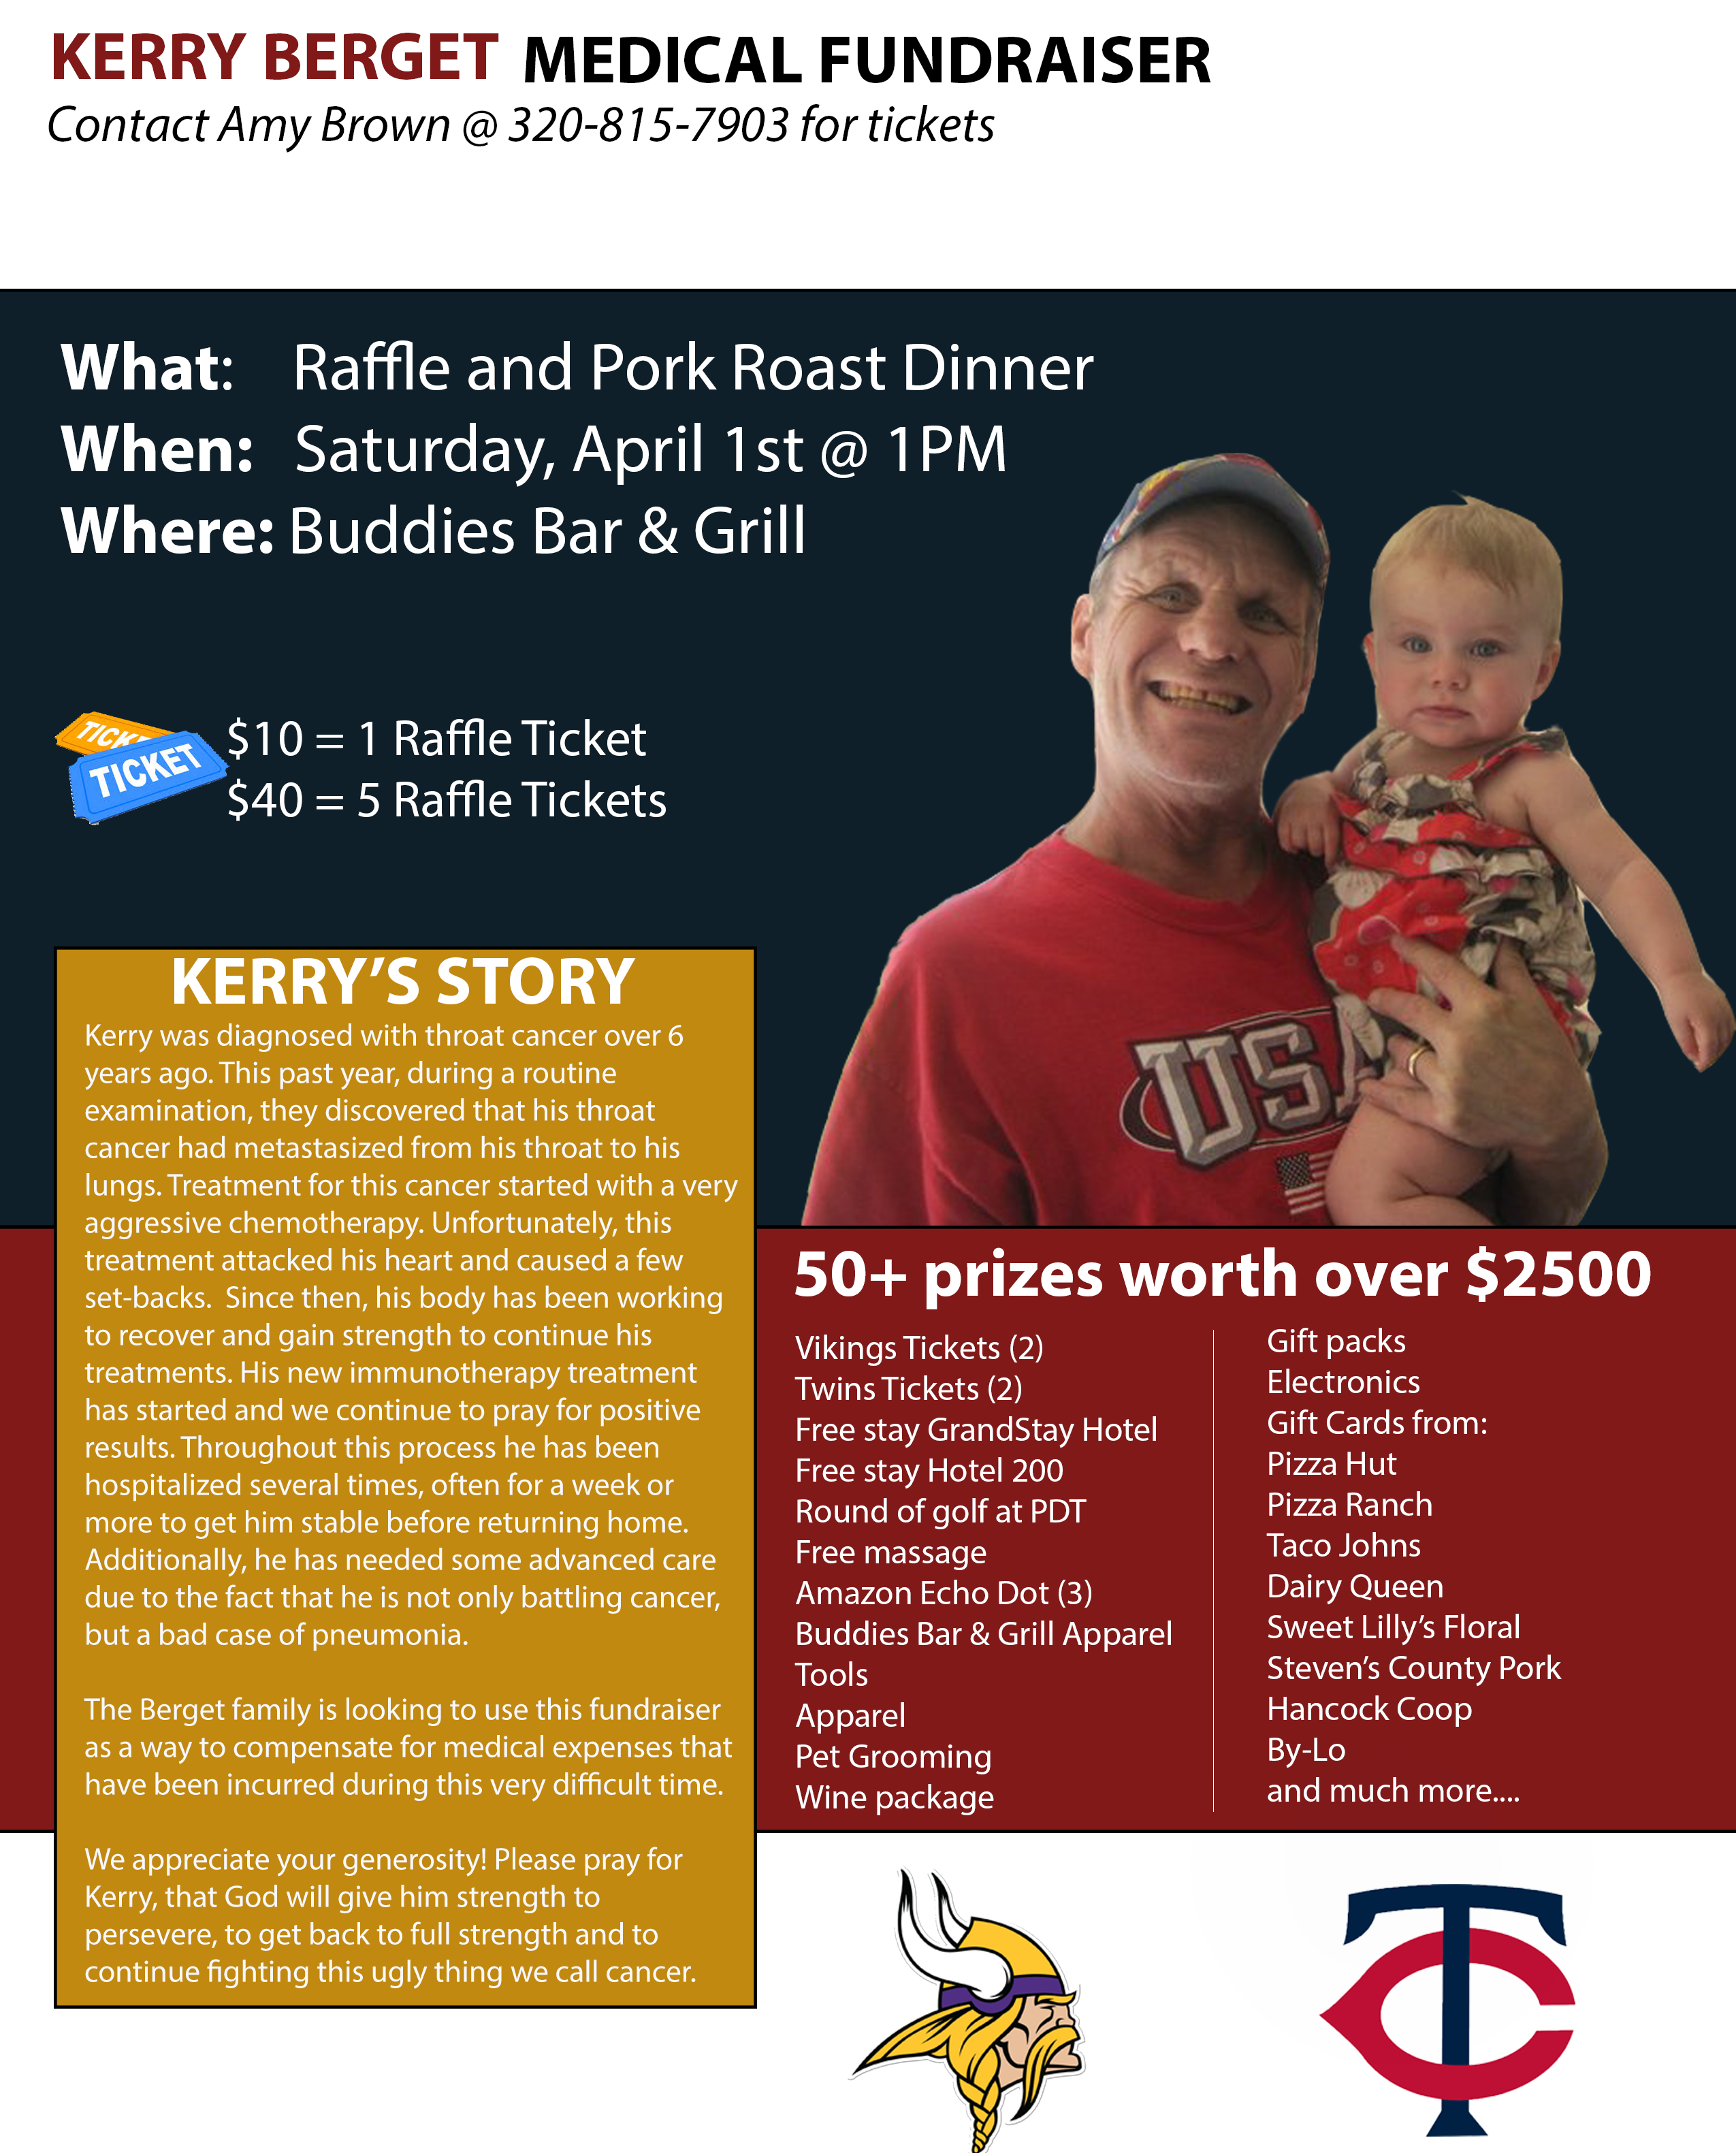 Kerry Berget Medical Fundraiser